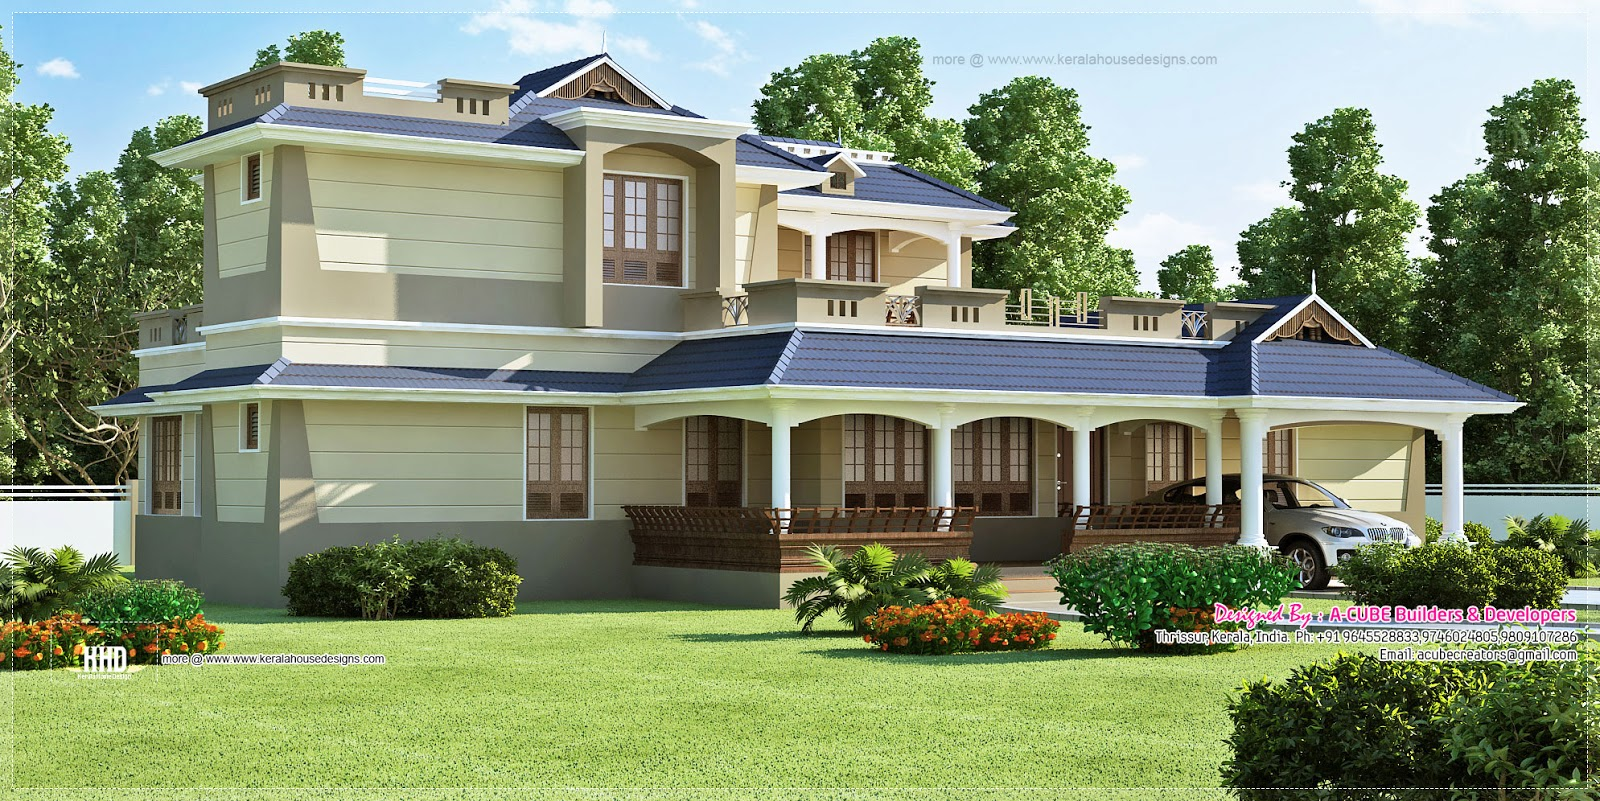 Luxury sloping roof 5 bedroom villa exterior home kerala for Sloped roof house plans in india